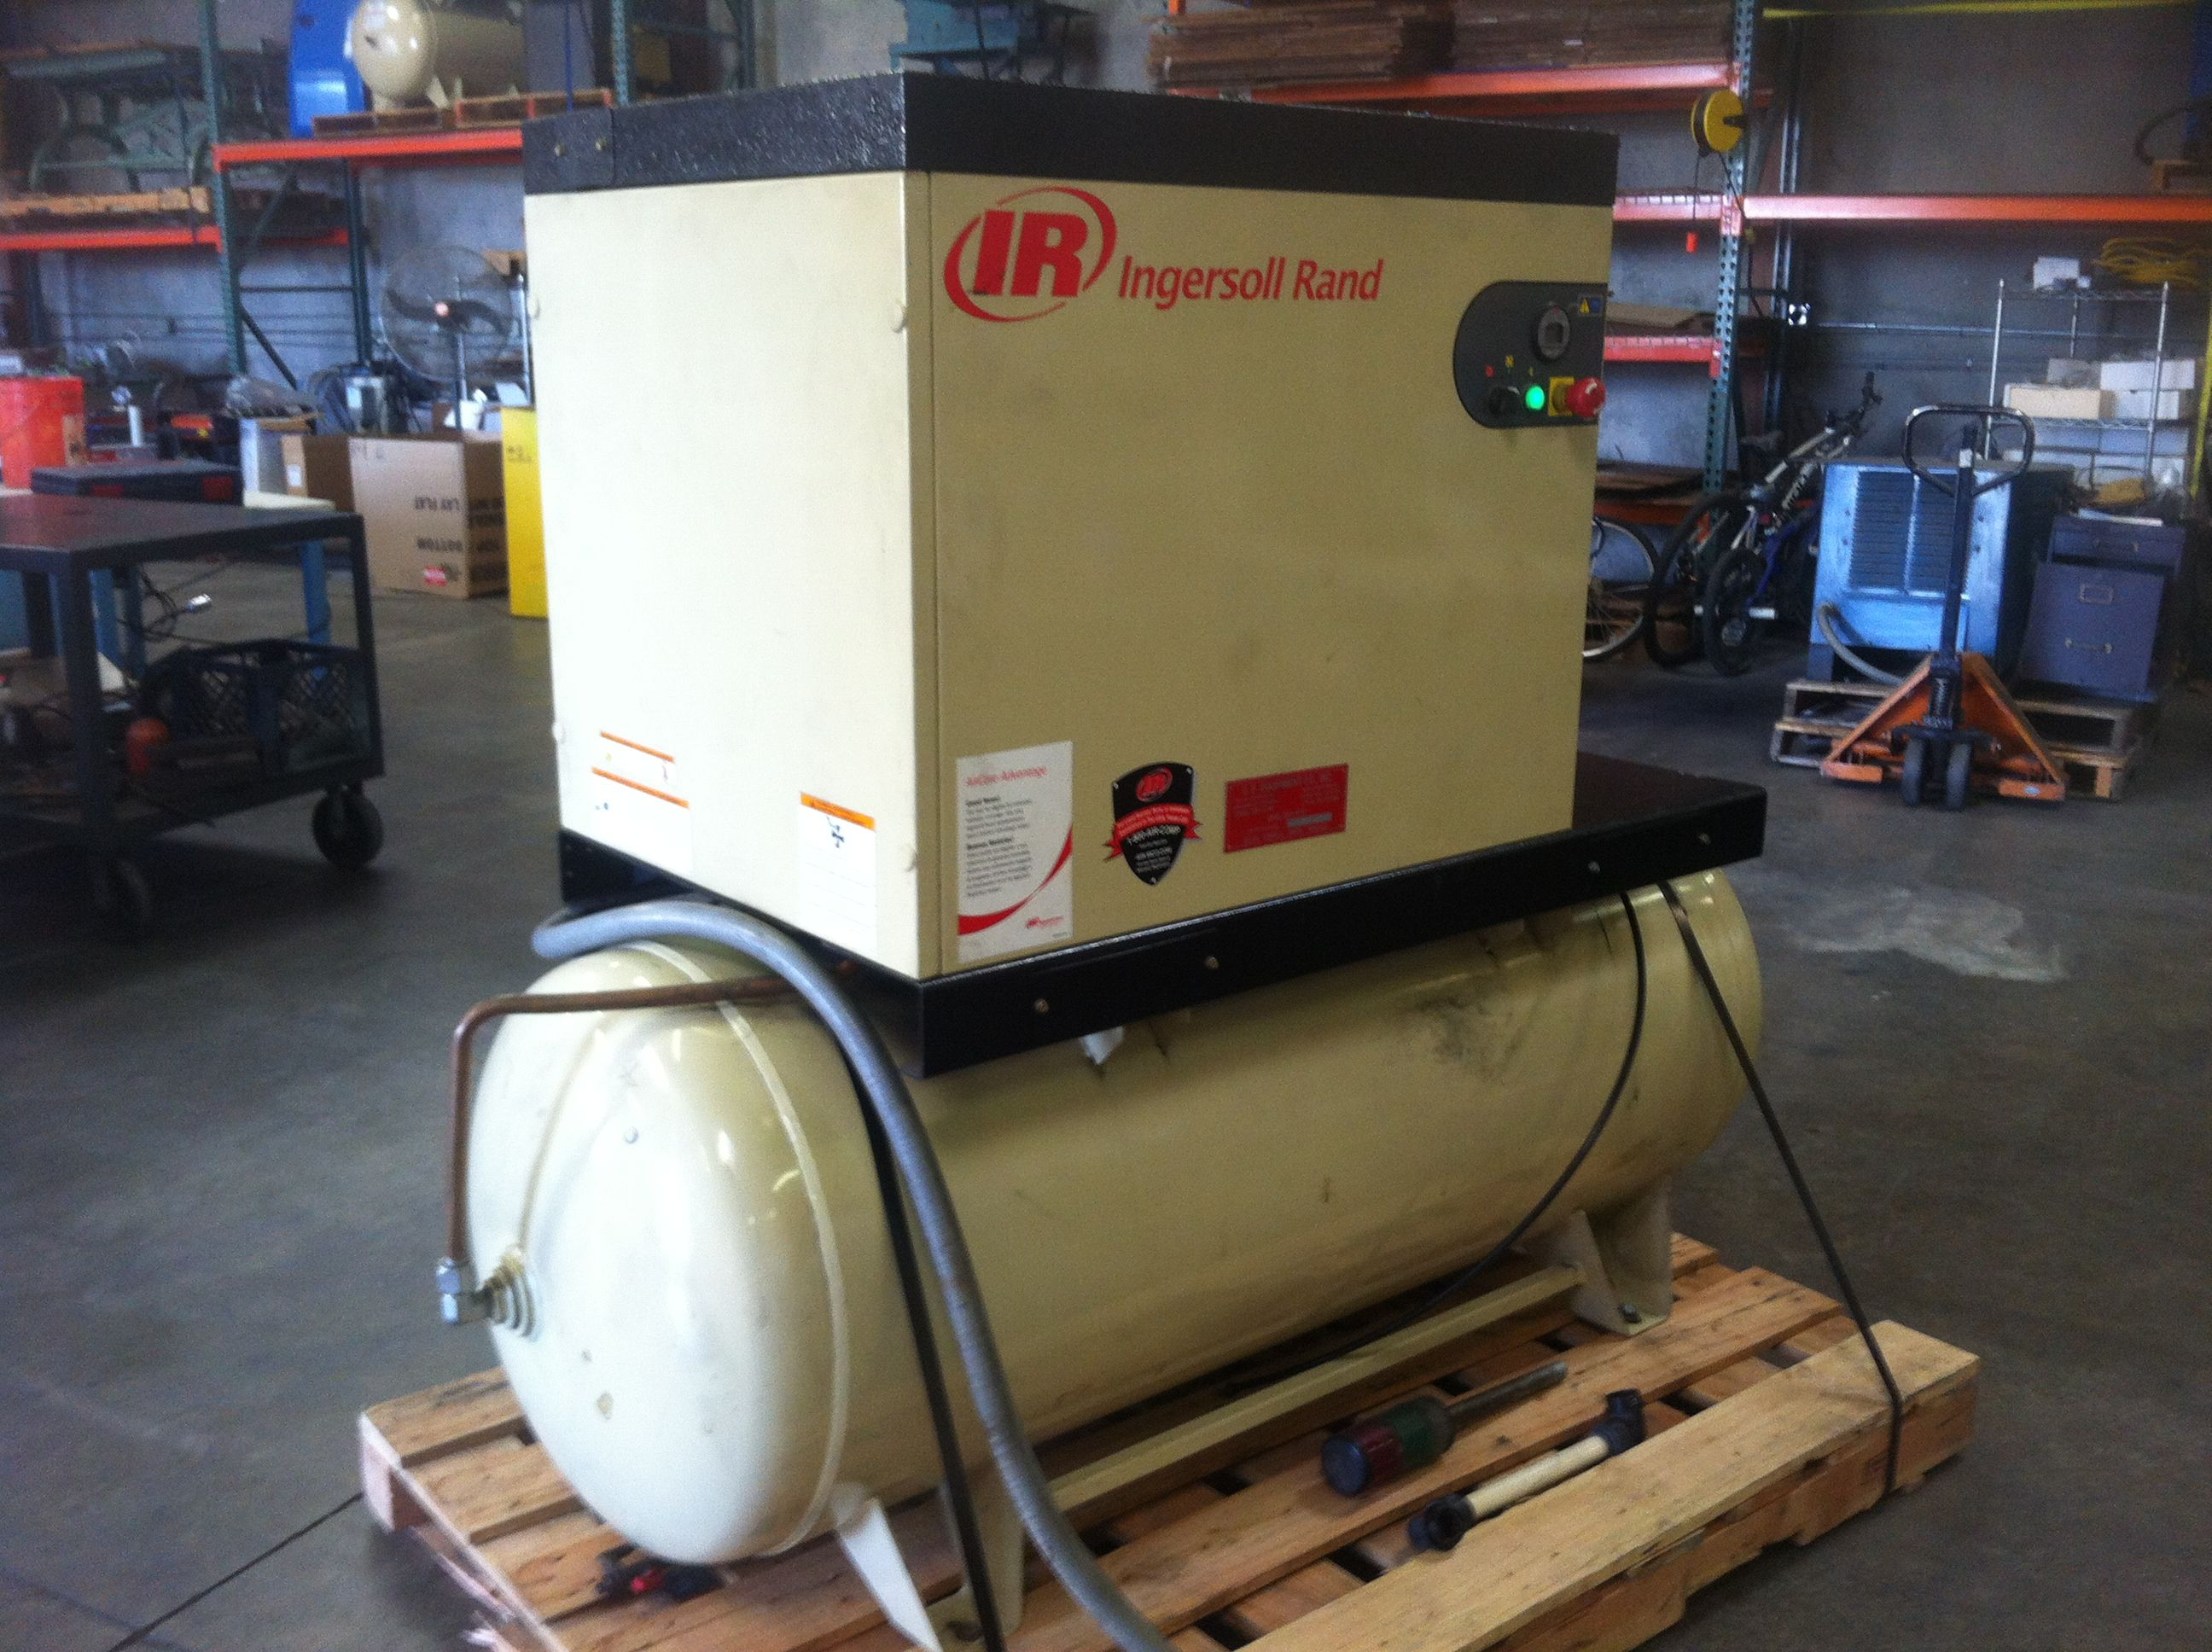 Ingersoll Rand D42IN Refrigerated Air Dryer 7.5HP 25 CFM